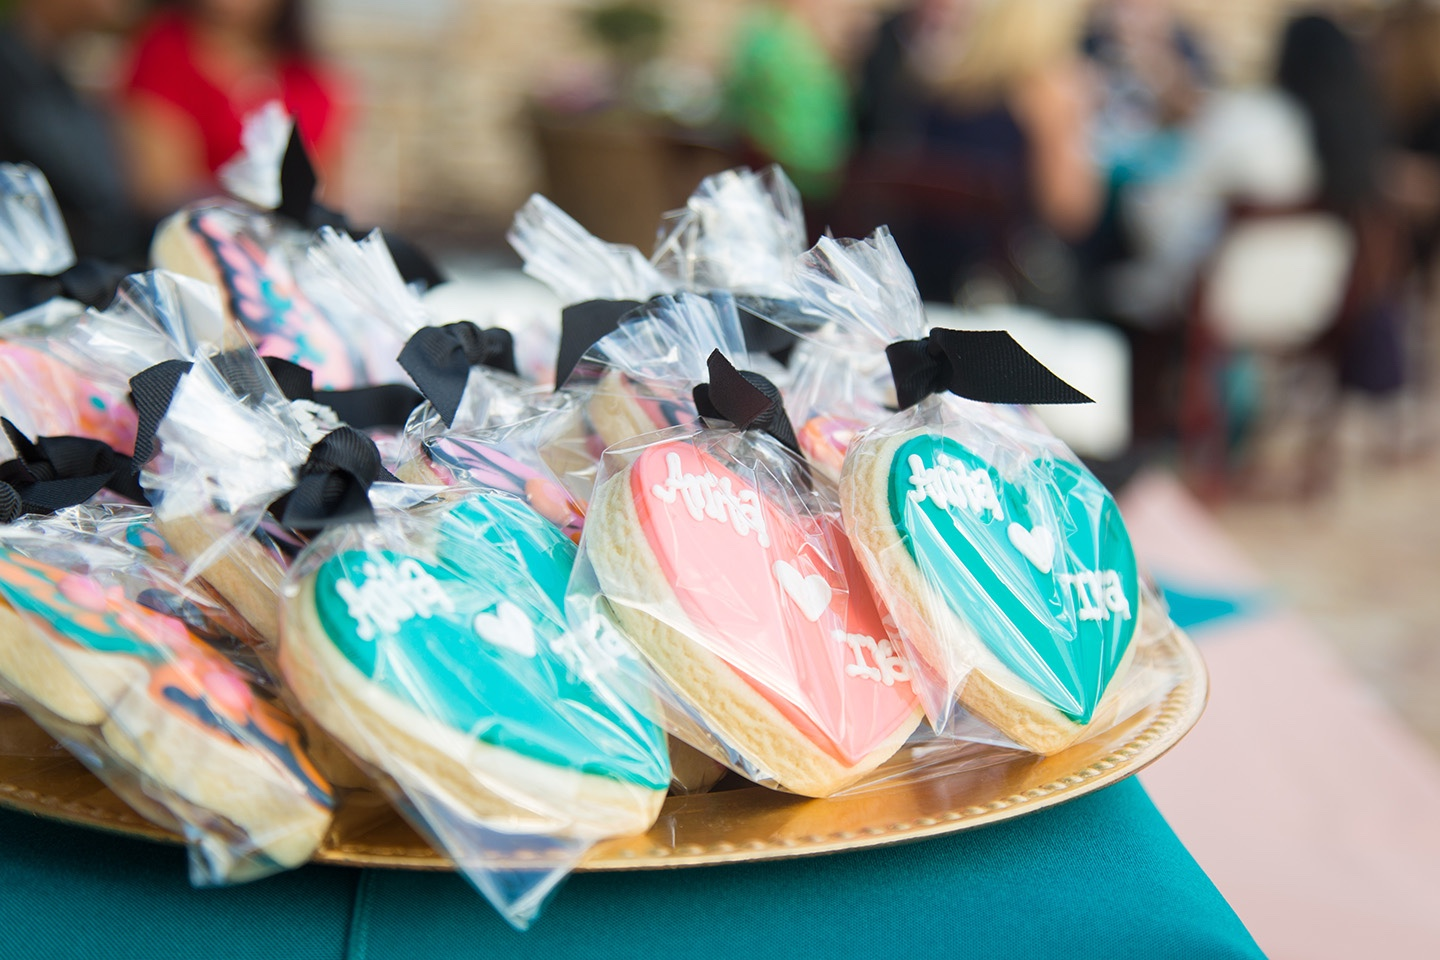 Custom cookies at this Orlando event